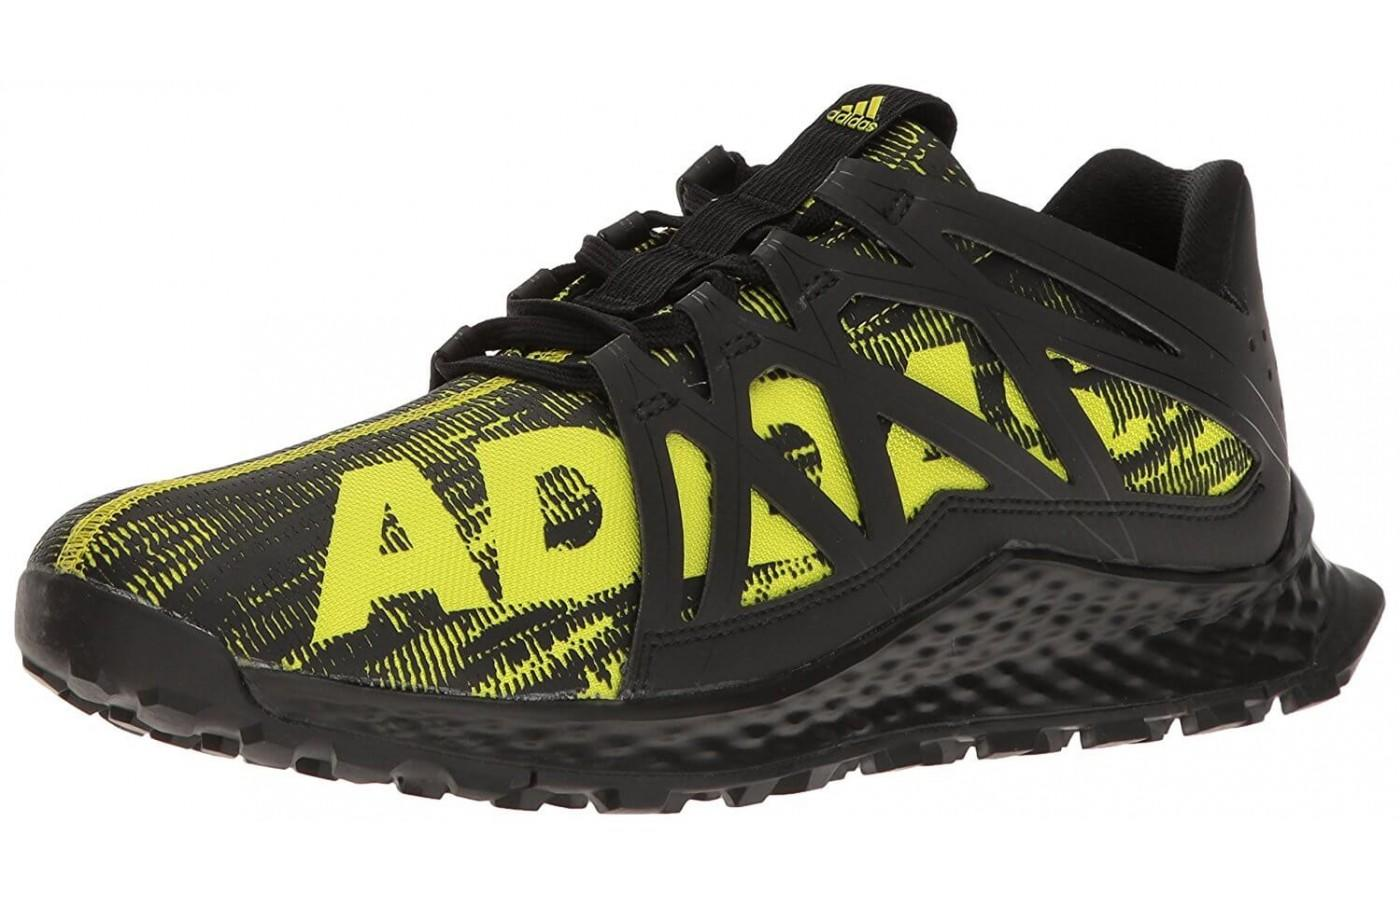 The Adidas Vigor Bounce Reviewed and tested